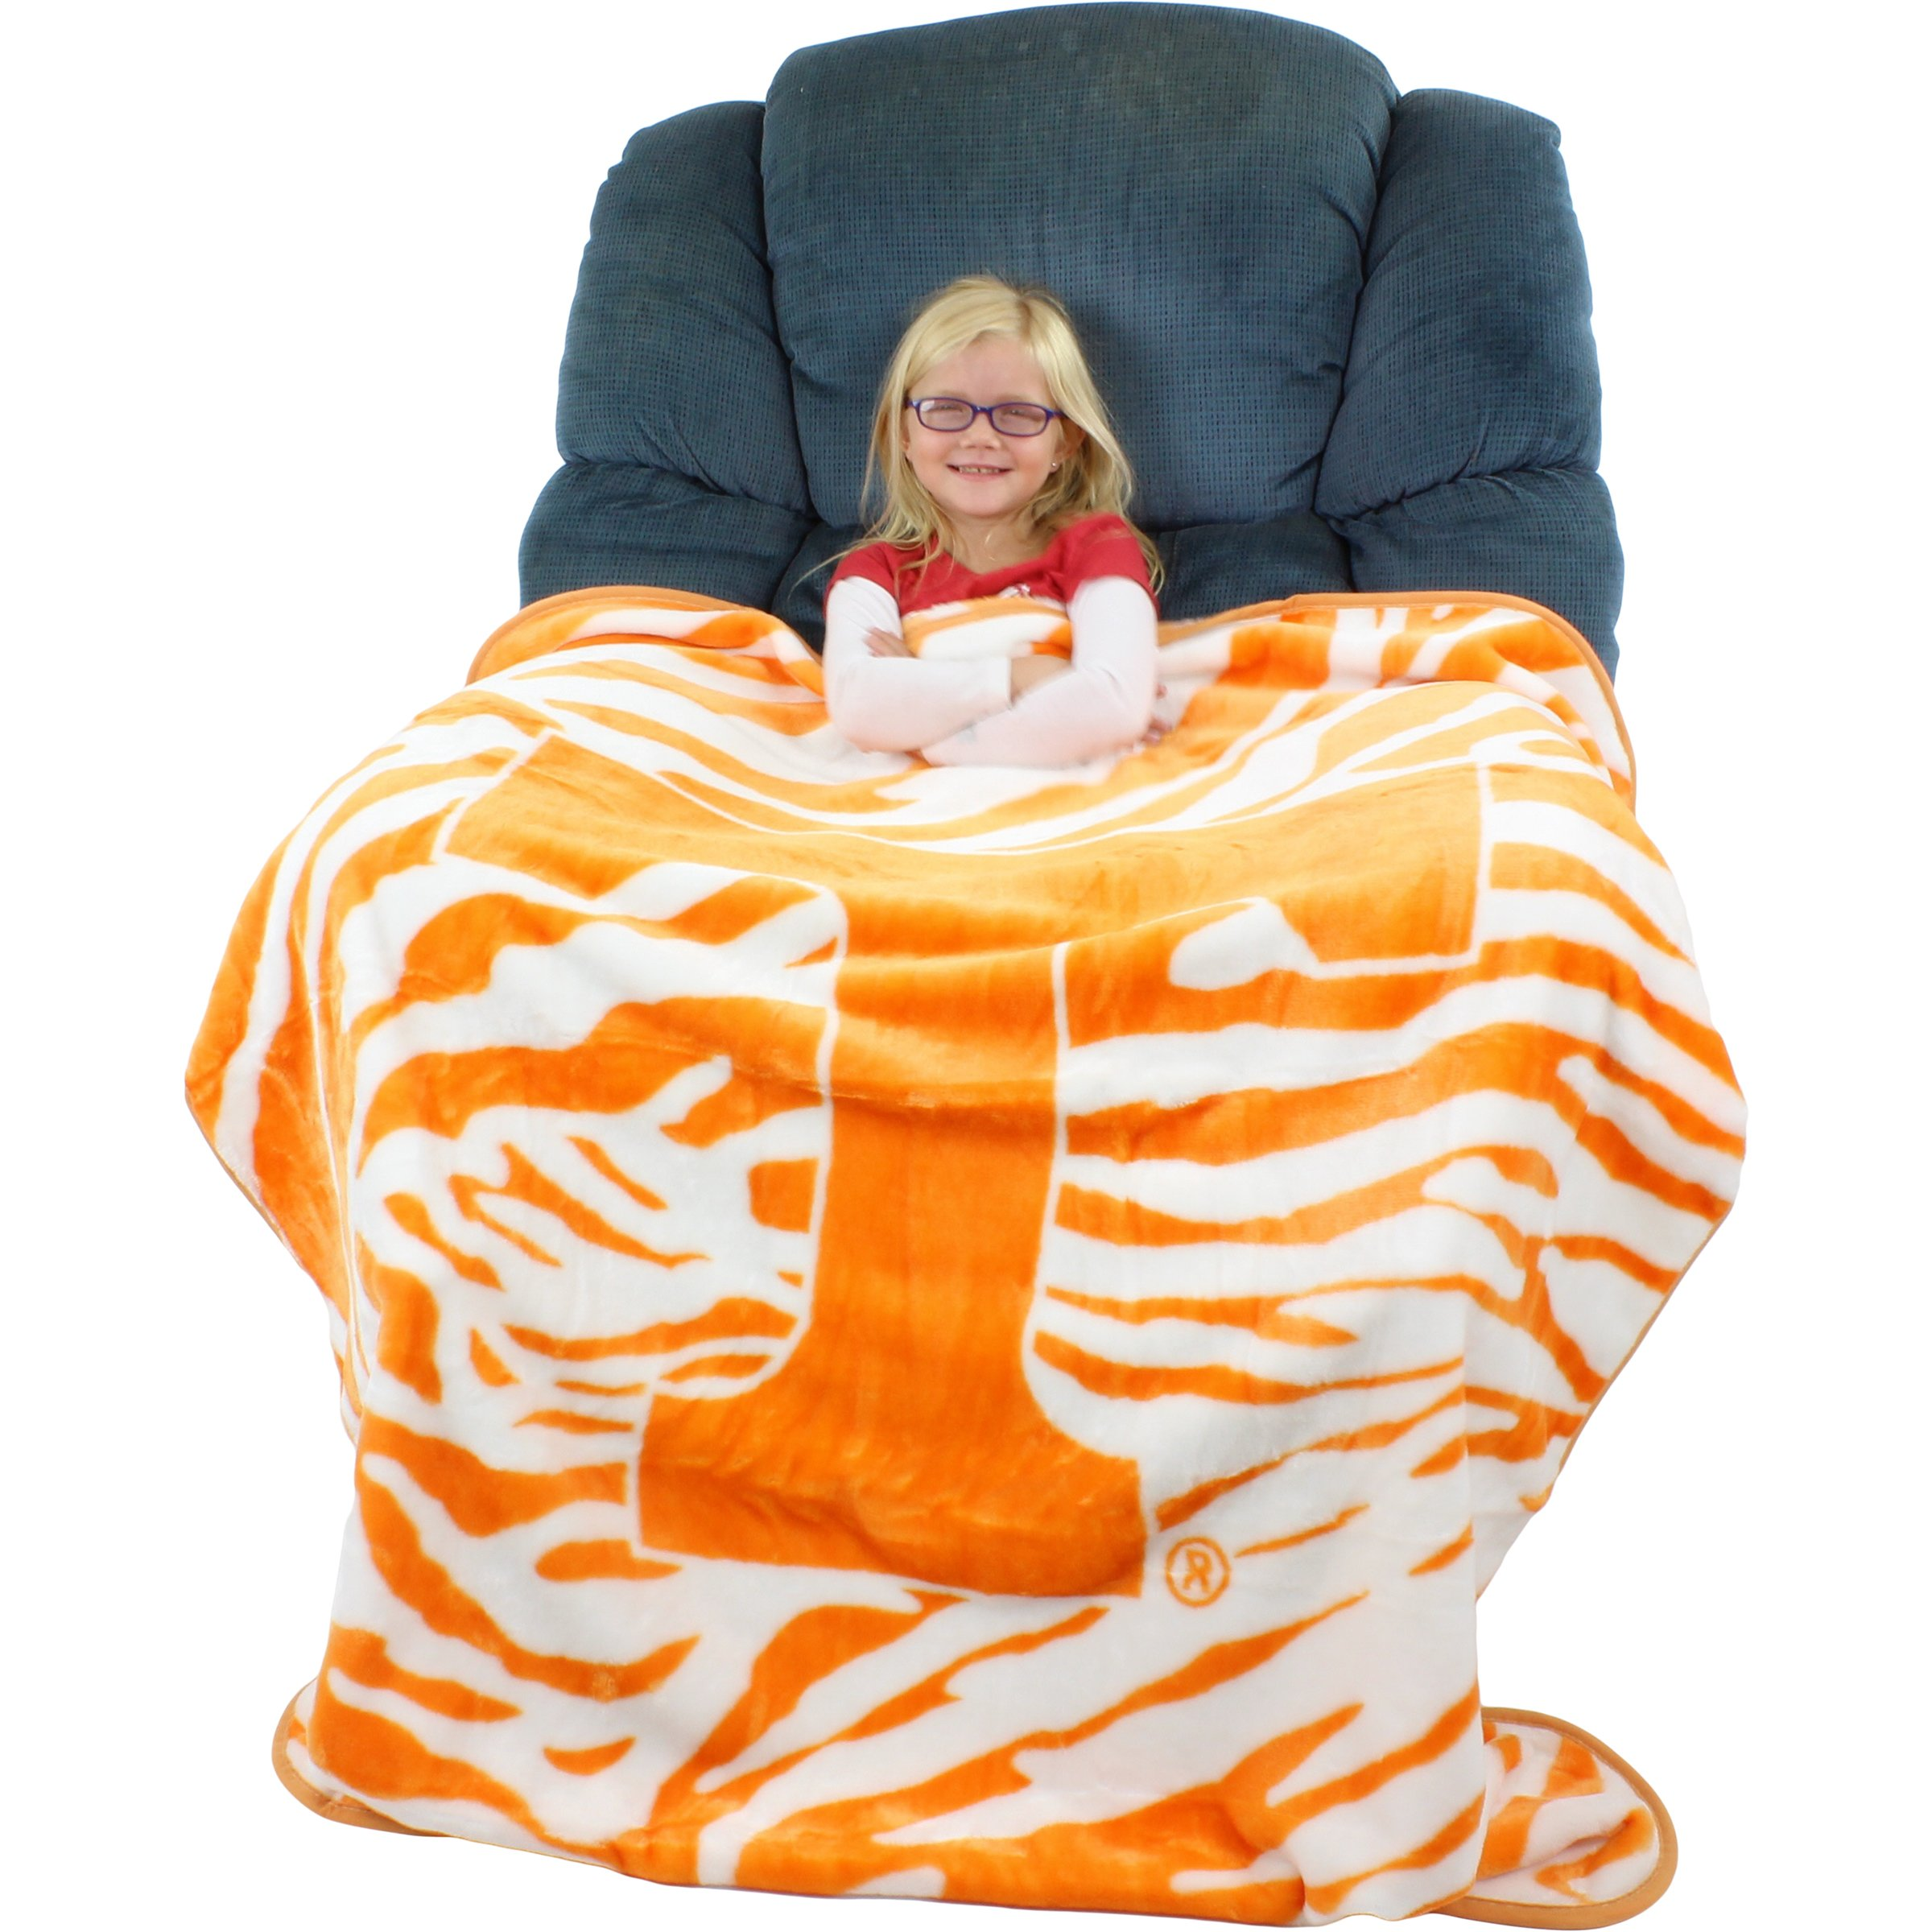 College Covers Rachel Throw Blanket, 50'' x 60'', Tennessee Volunteers by College Covers